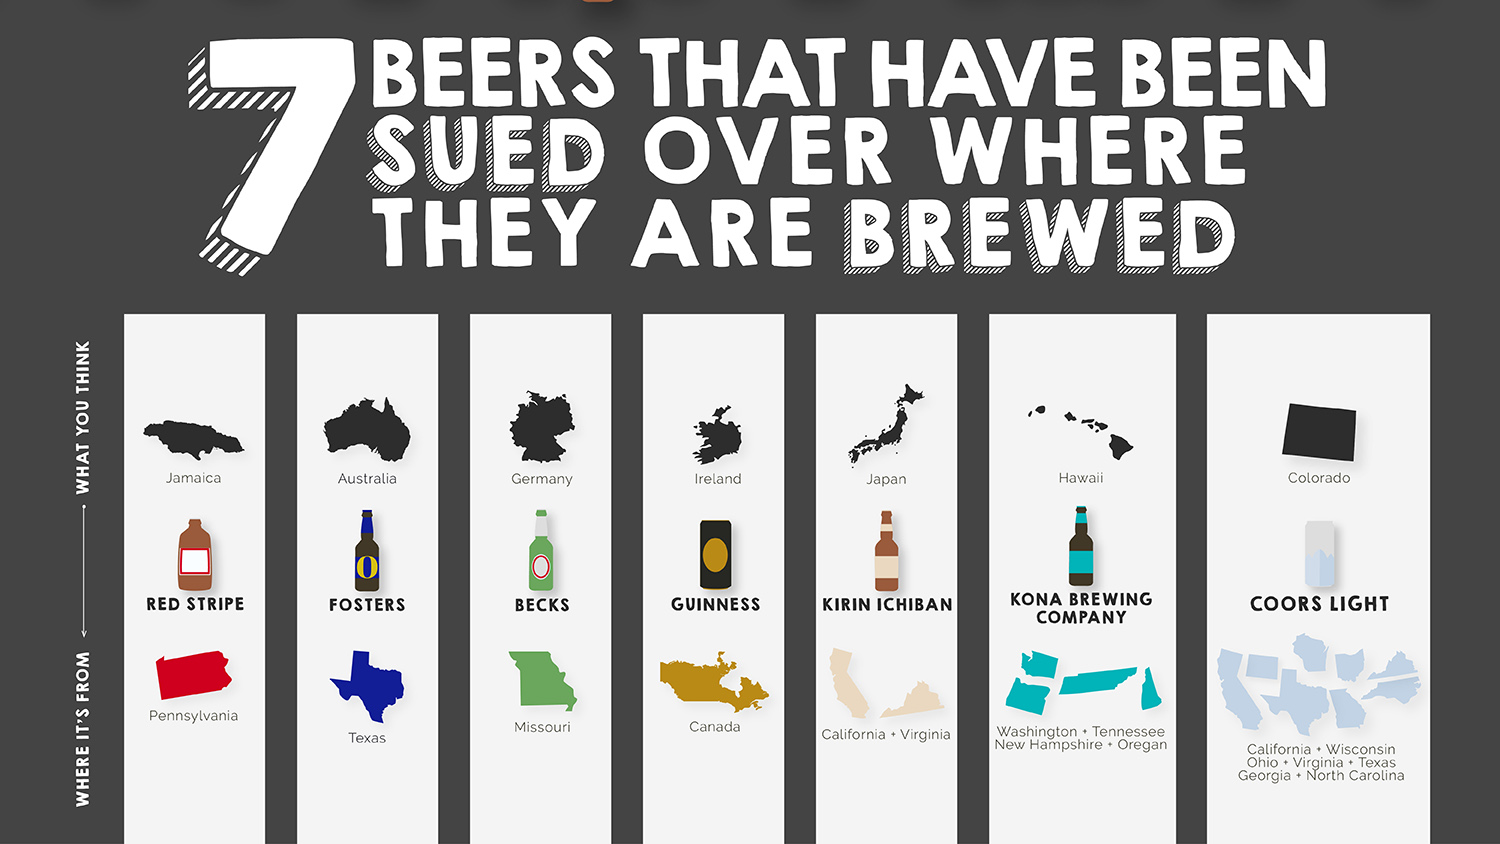 beers that have been sued over where they are brewed